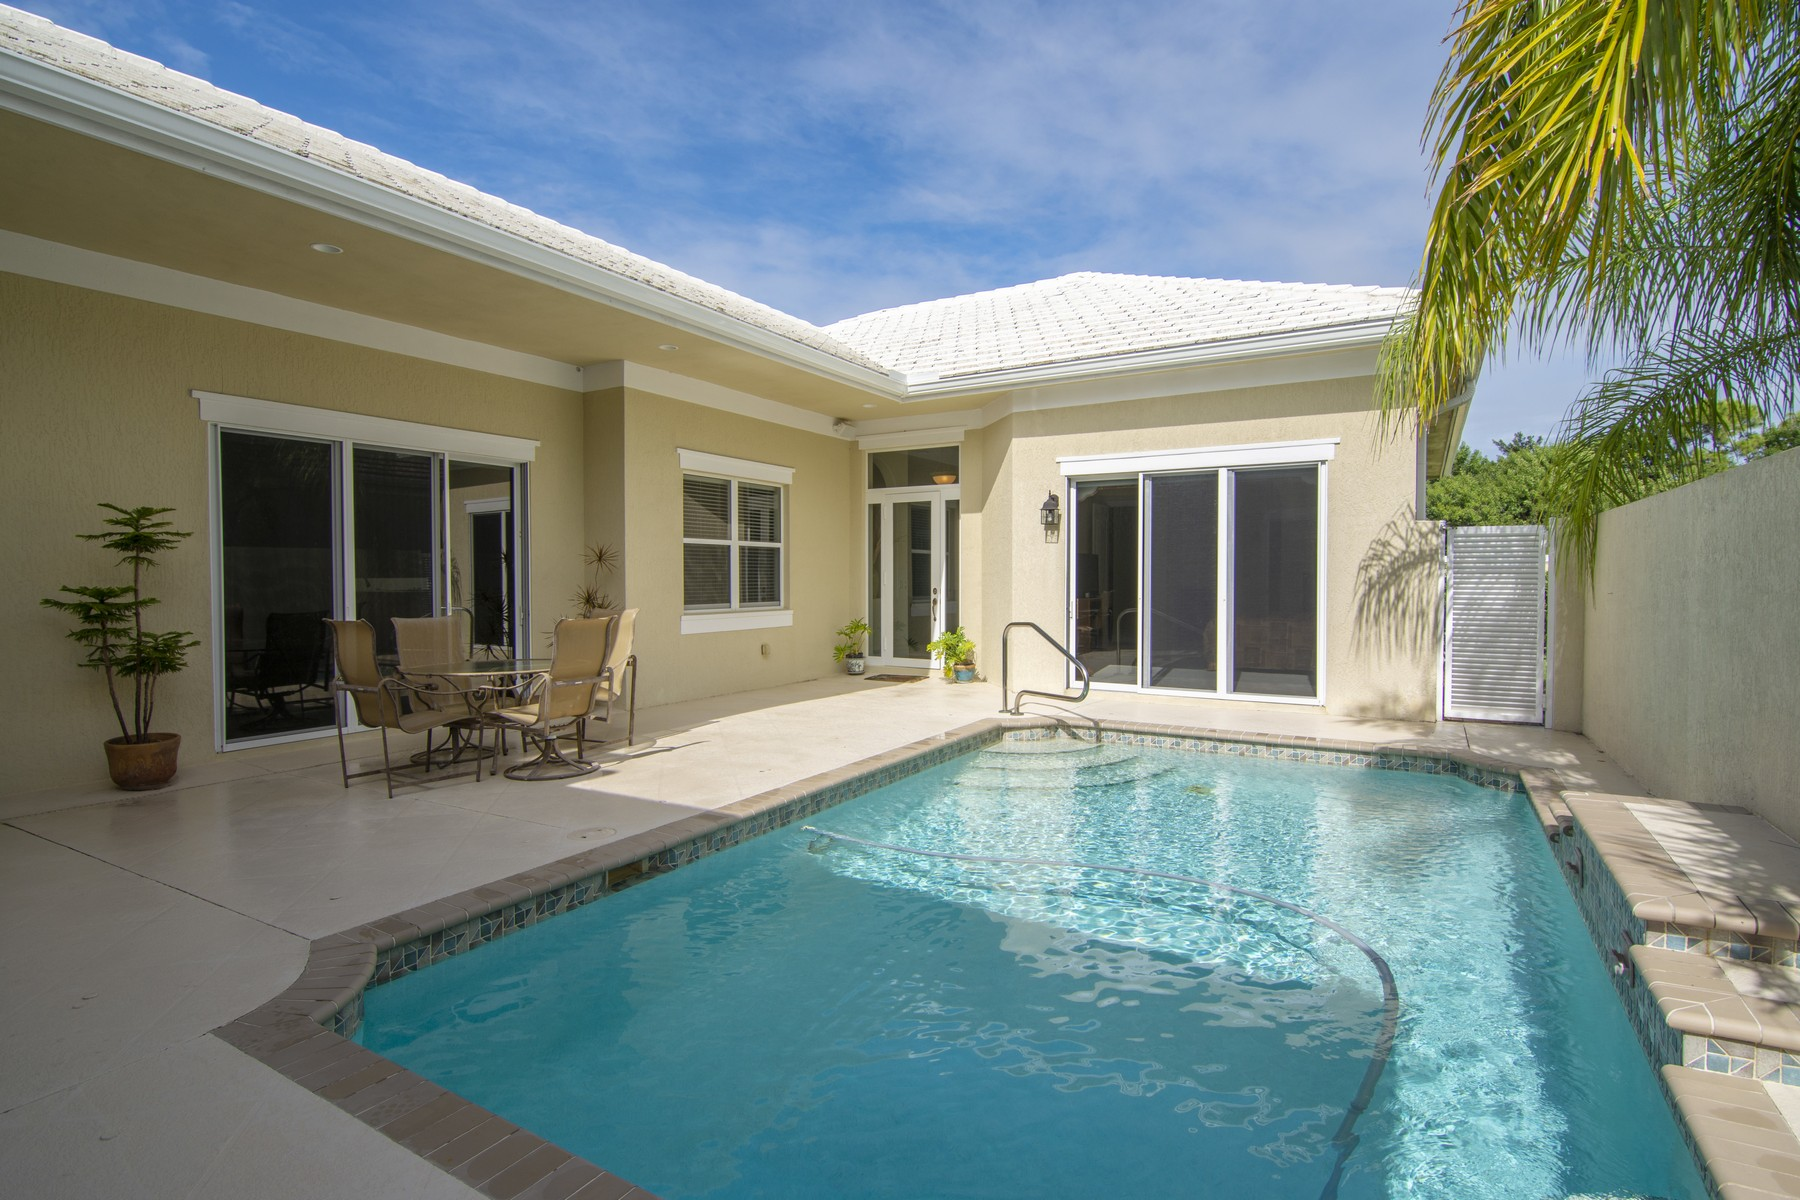 Single Family Homes for Sale at Generous Courtyard-Style Pool Home with Stylish Details 1025 Riverwind Circle Vero Beach, Florida 32967 United States